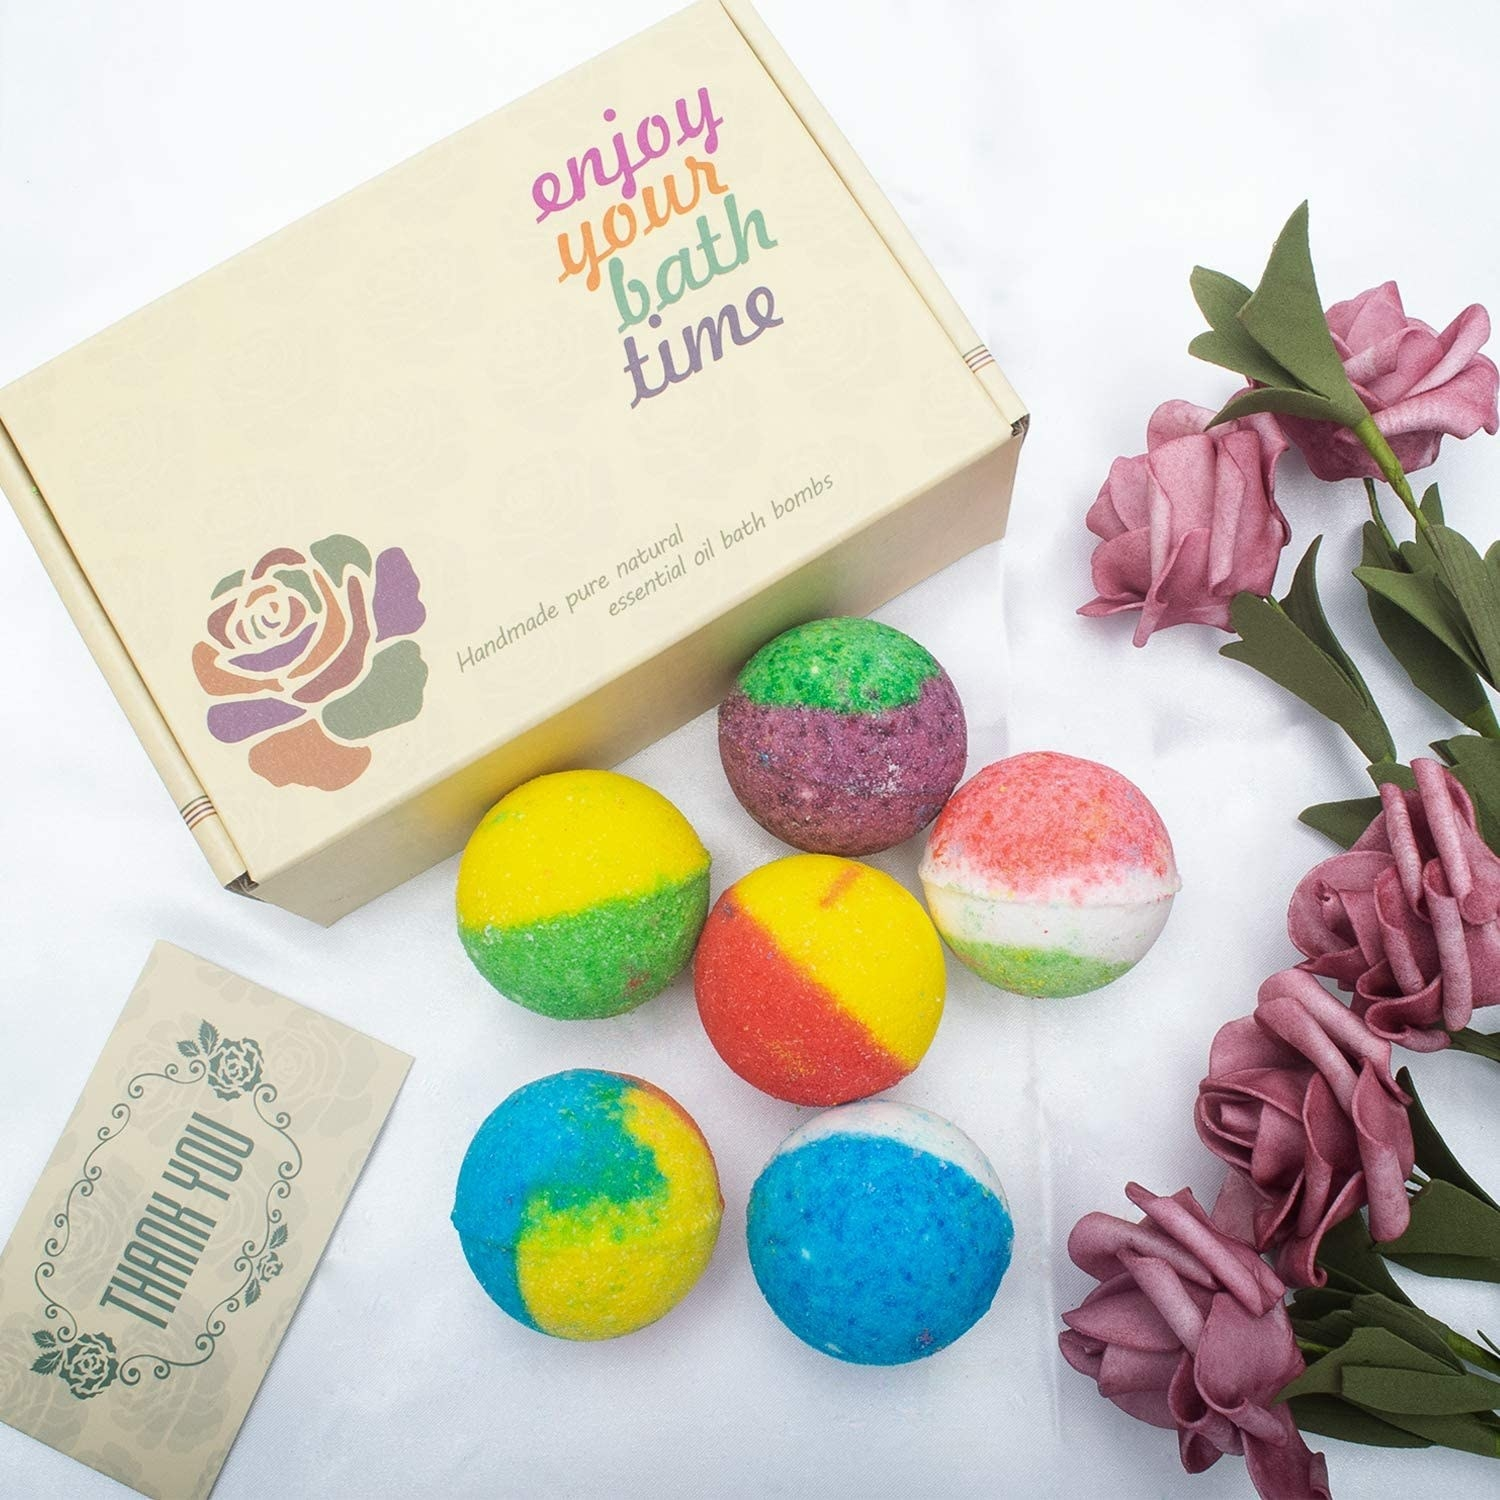 round bath bombs in various colors